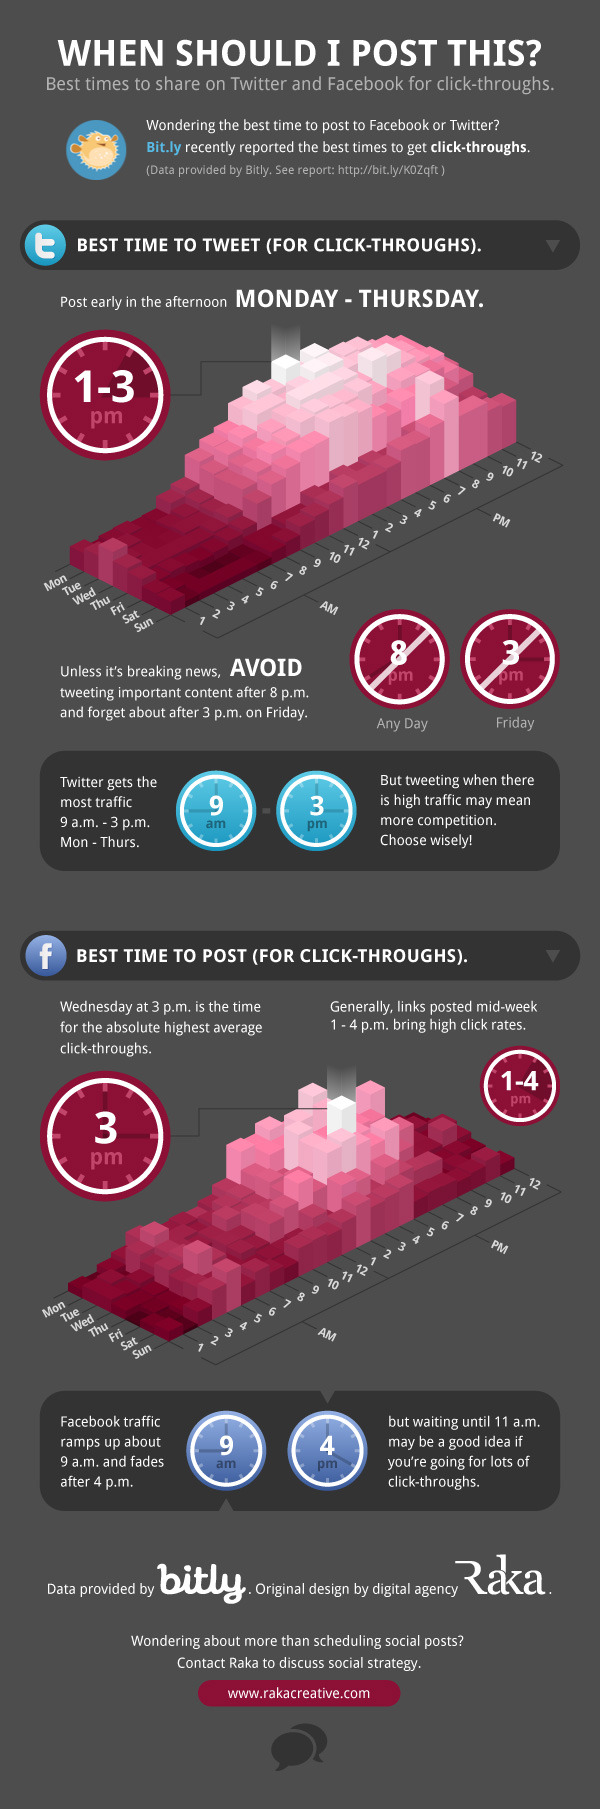 Best Times to Tweet or Post on Facebook infographic